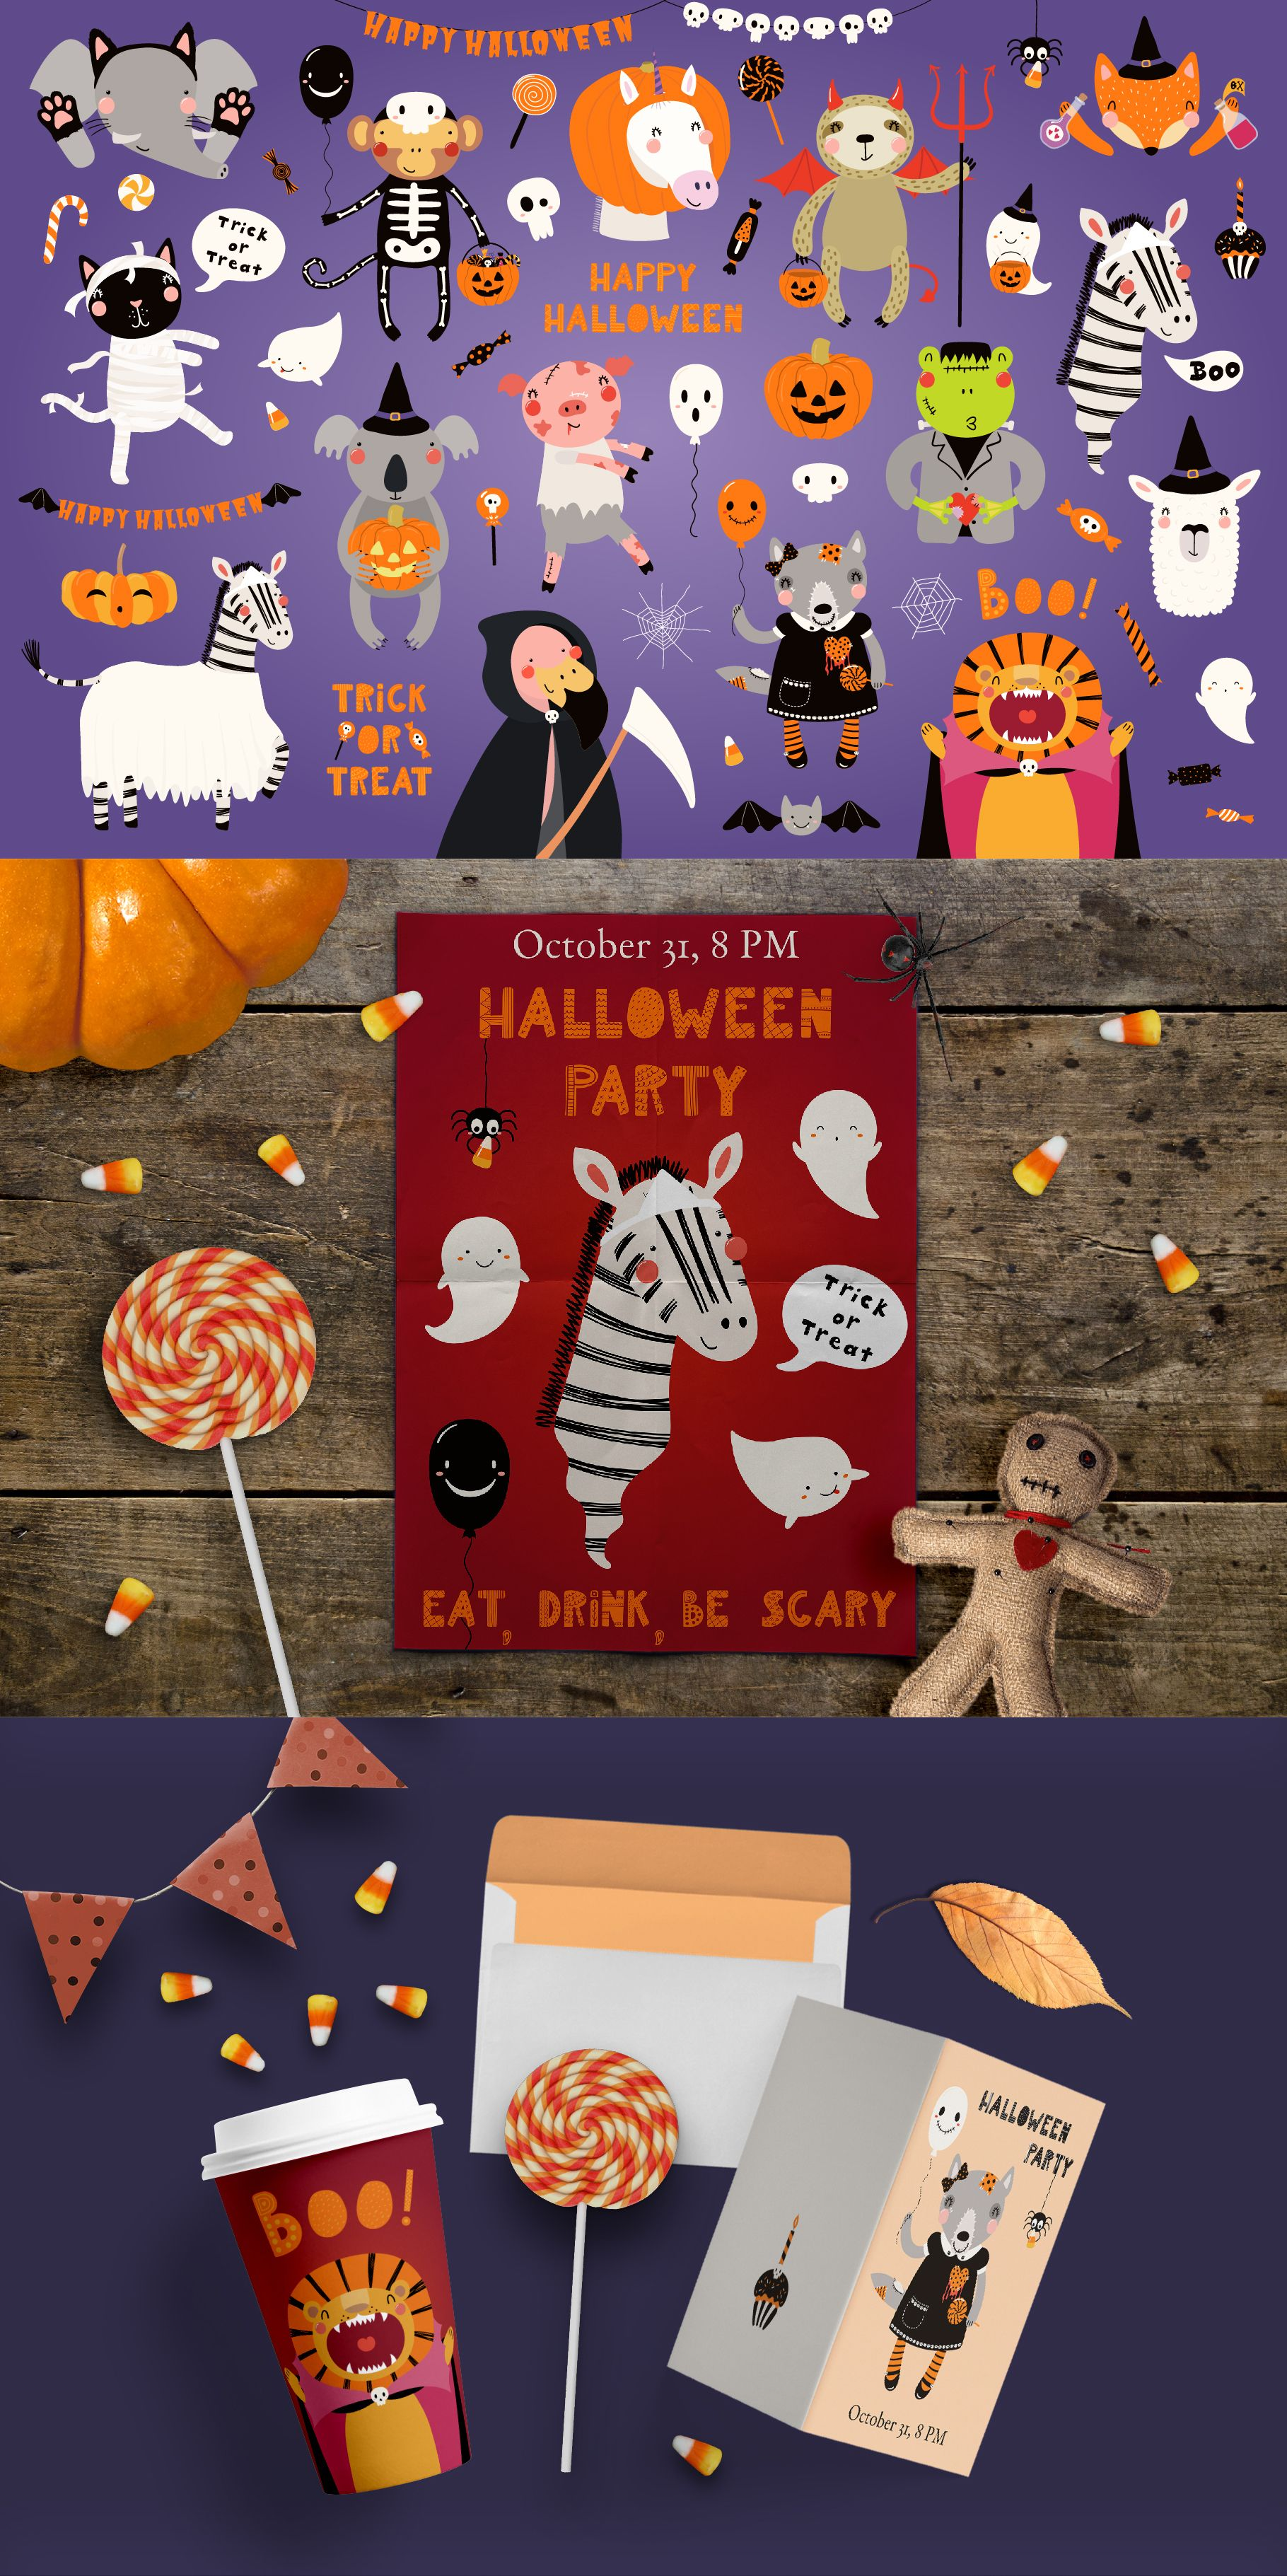 Halloween Party Cute Animals Clipart | Cactus illustration ...